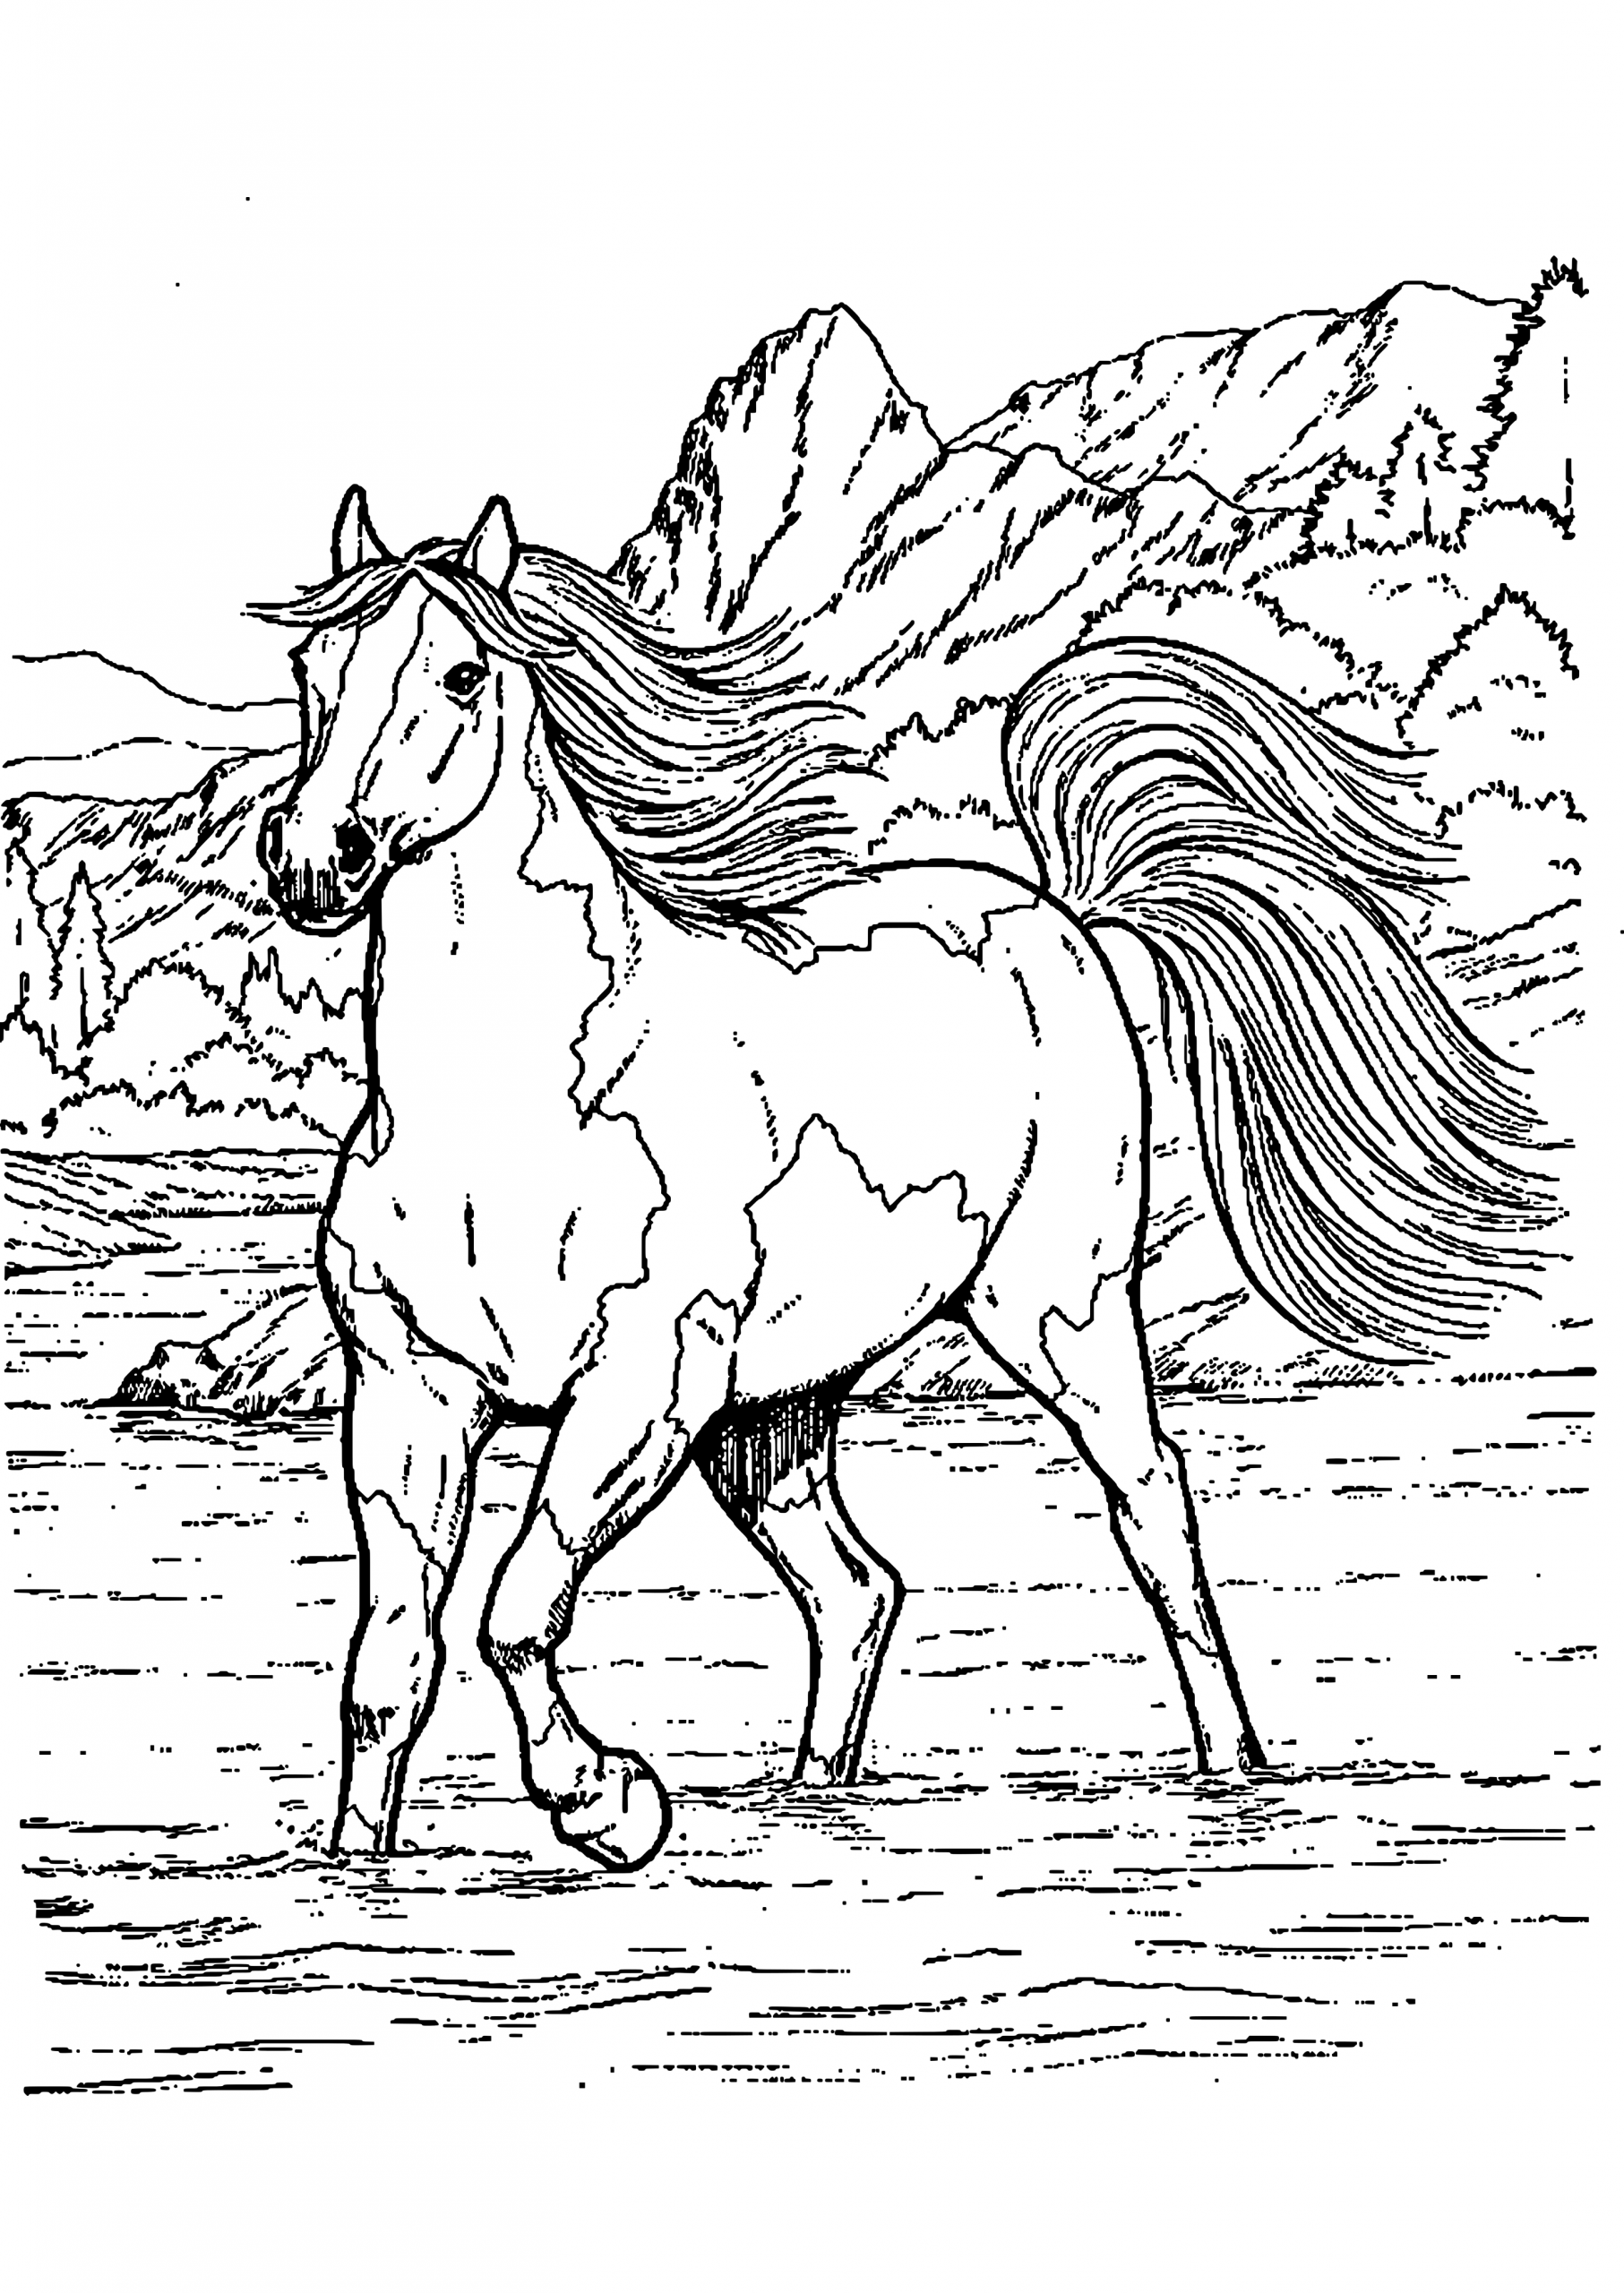 Chevaux | Coloriage Cheval, Coloriage Animaux, Coloriage destiné Image De Cheval A Colorier